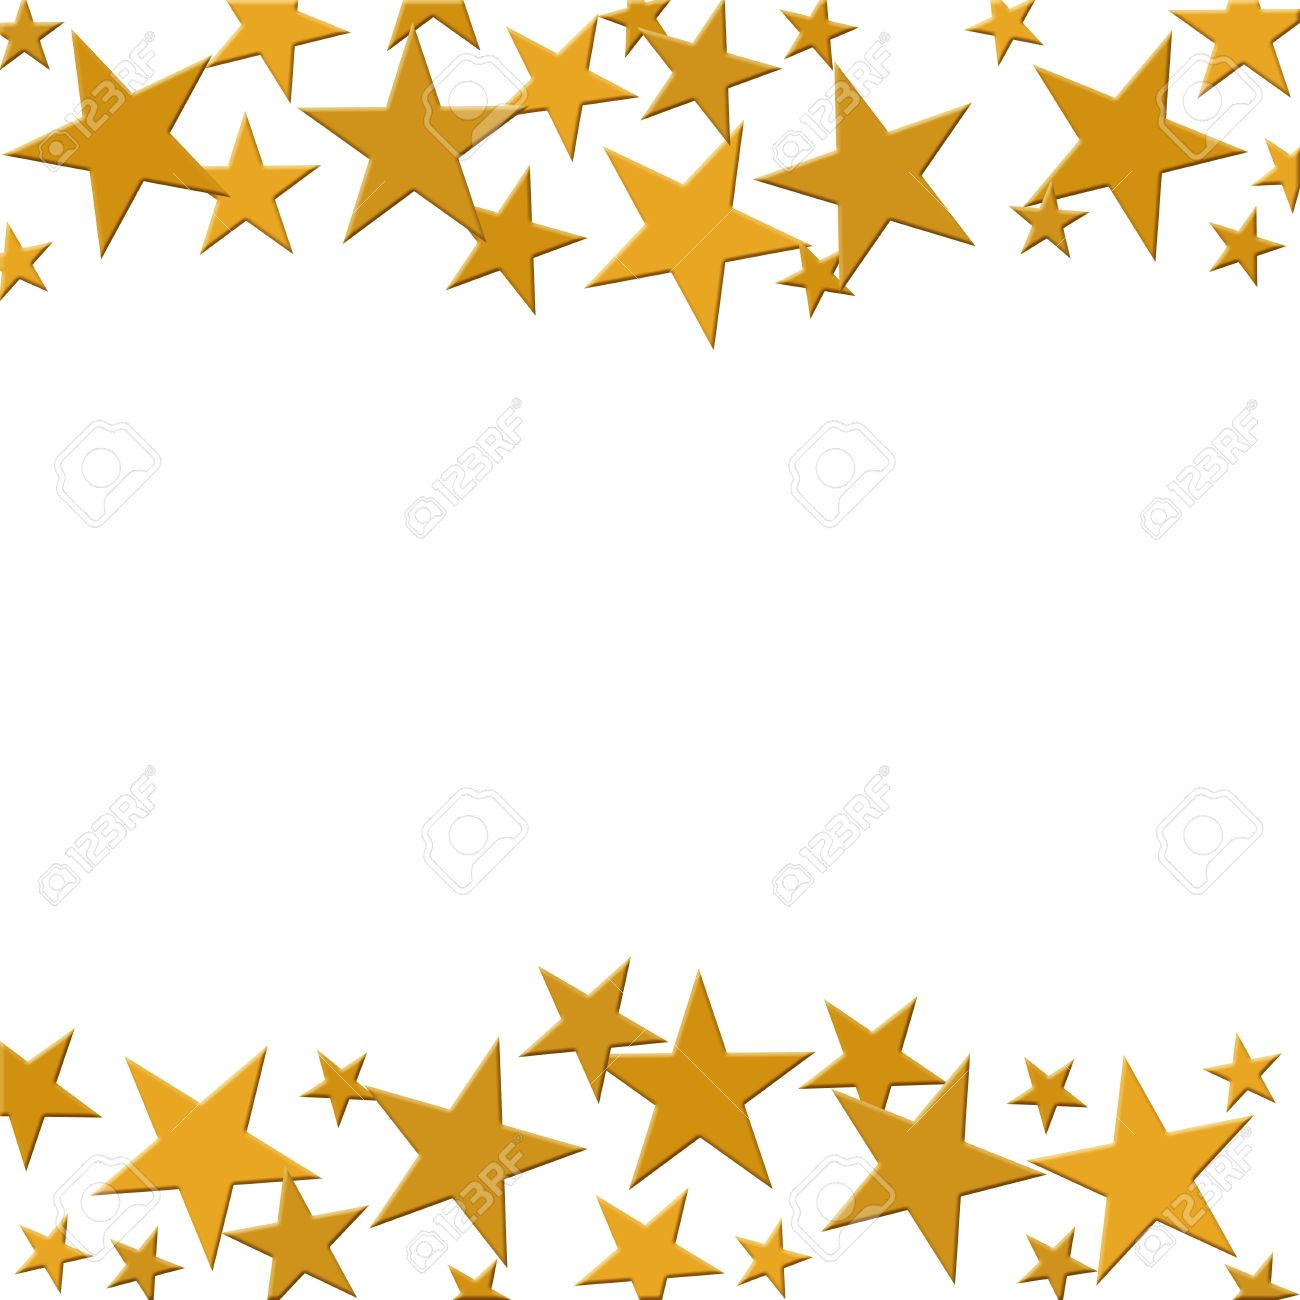 a bunch of golden stars isolated on a white background winning rh 123rf com Gold Star Border Clip Art Gold Star Award Clip Art